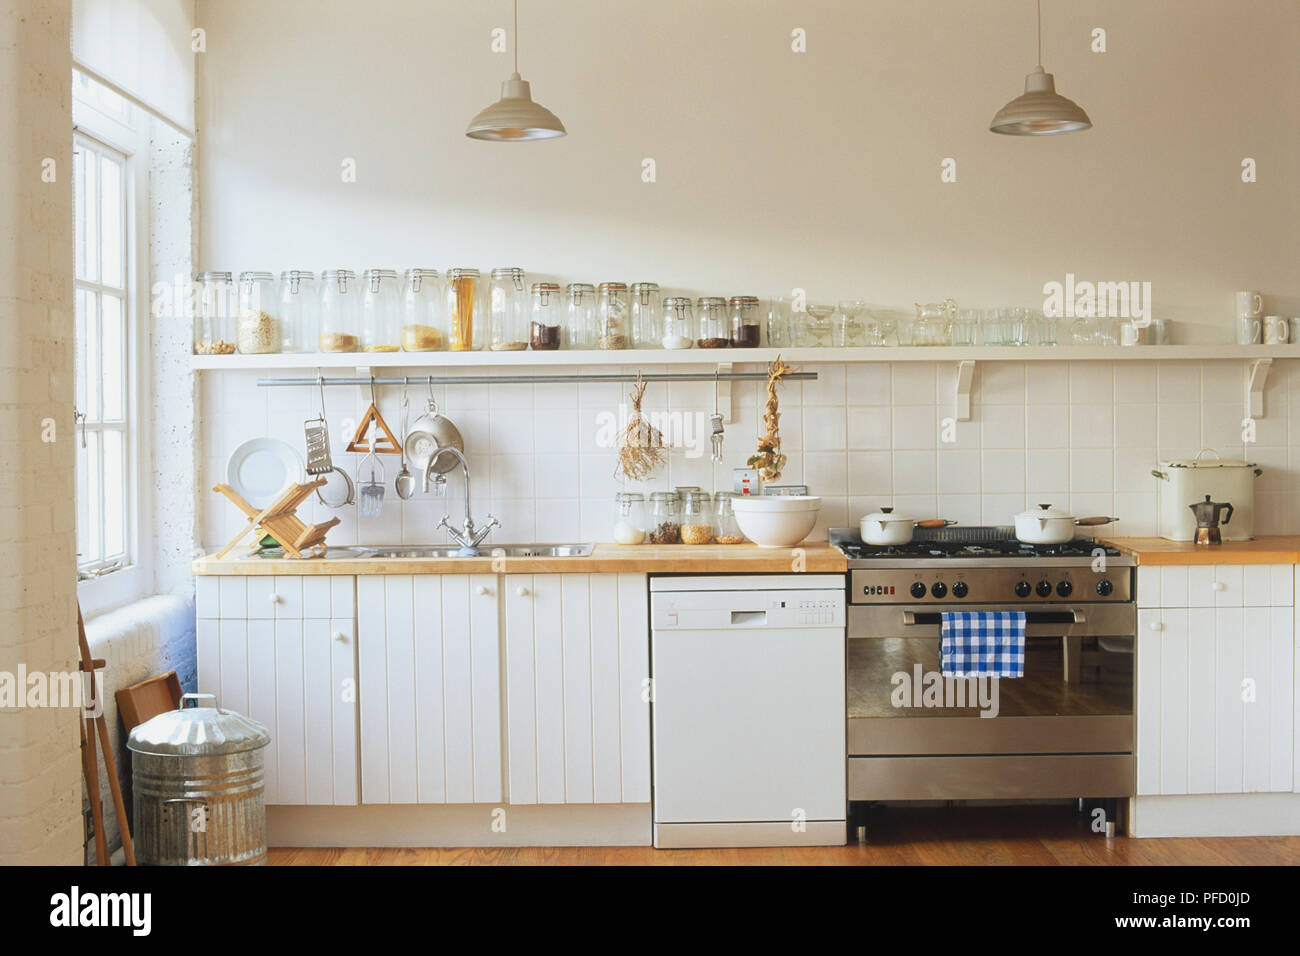 Kitchen with white wooden cupboards, pendant lights, long shelf